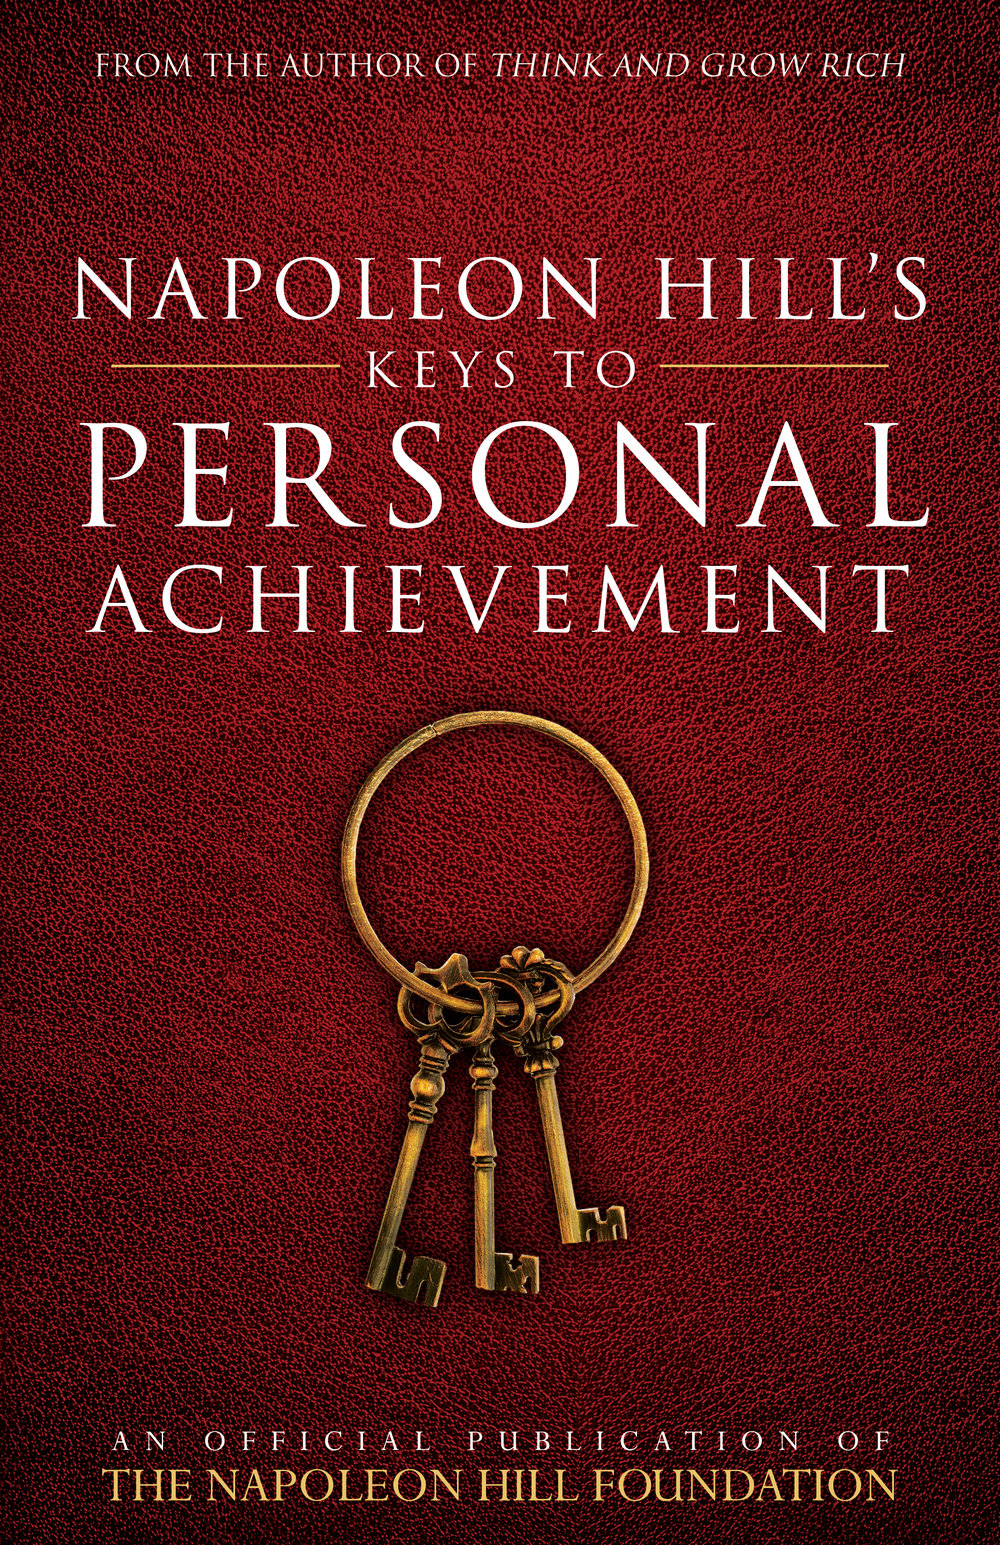 Napoleon Hill's Keys to Personal Achievement - By napoleon hill